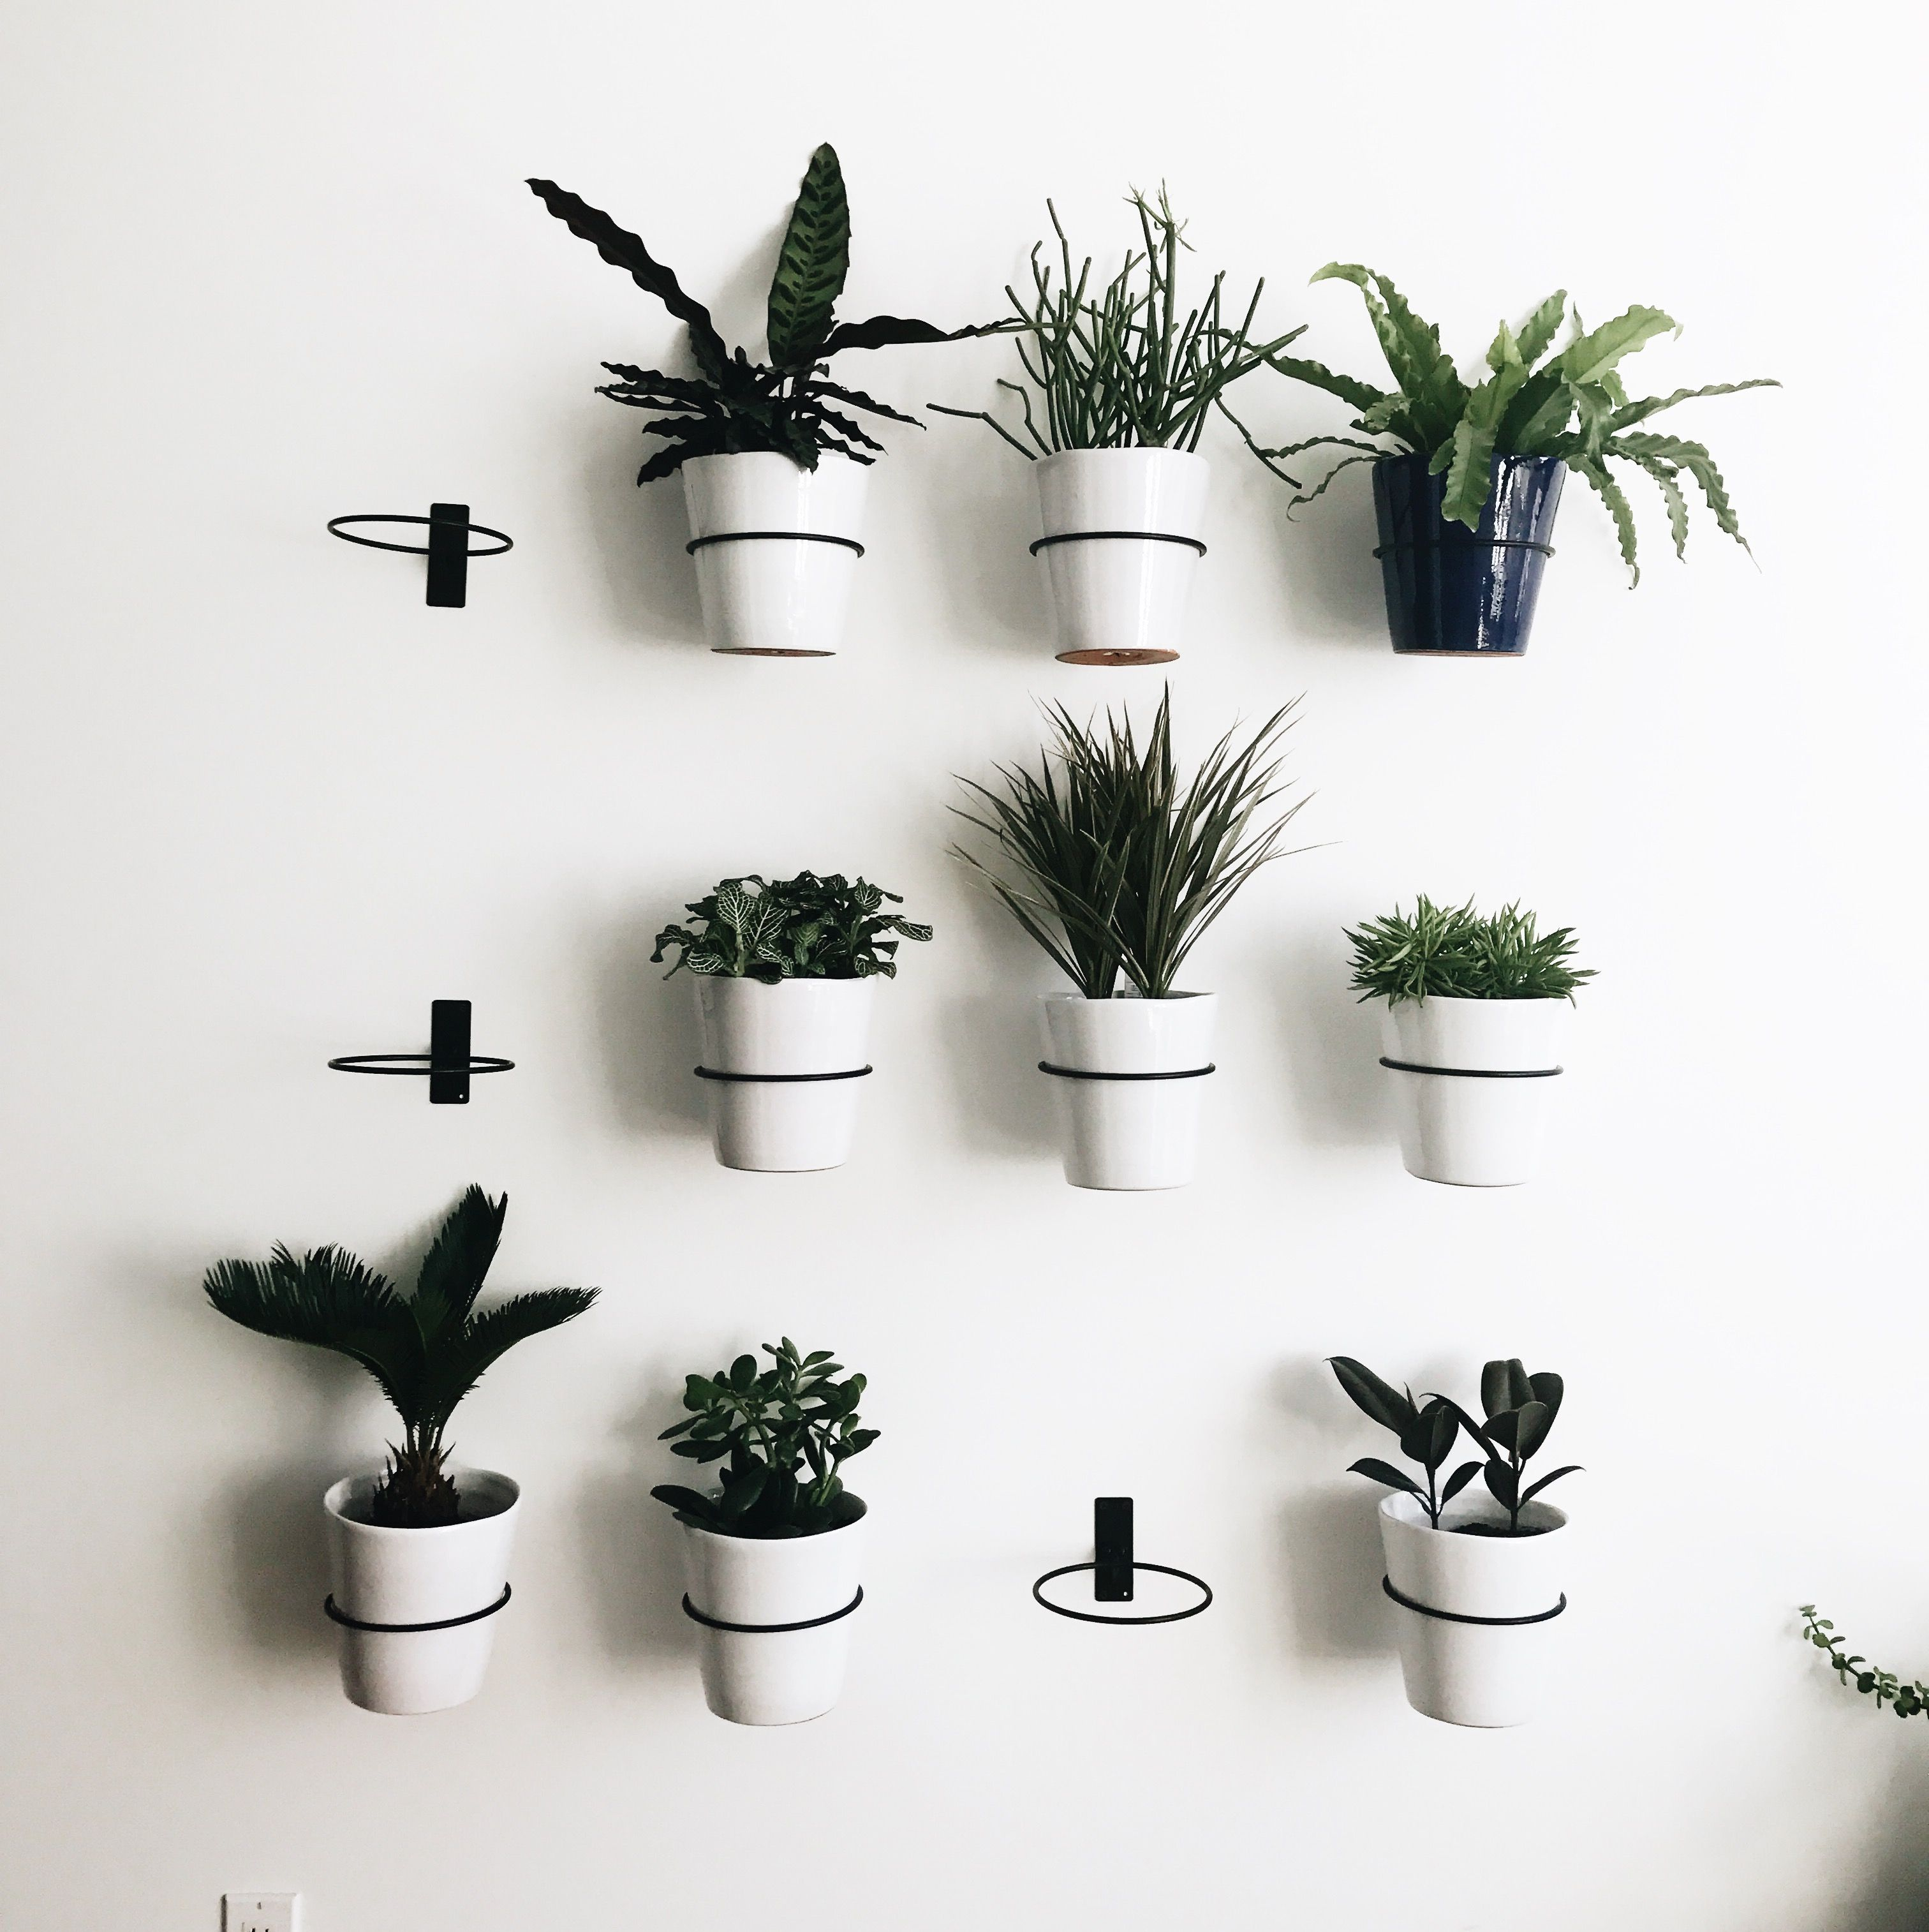 Indoor Plant Wall With Planters And Wall Planter Hooks From Crate And Barrel Plant Plantwall Plant Wall Decor Indoor Plant Wall Wall Planters Indoor